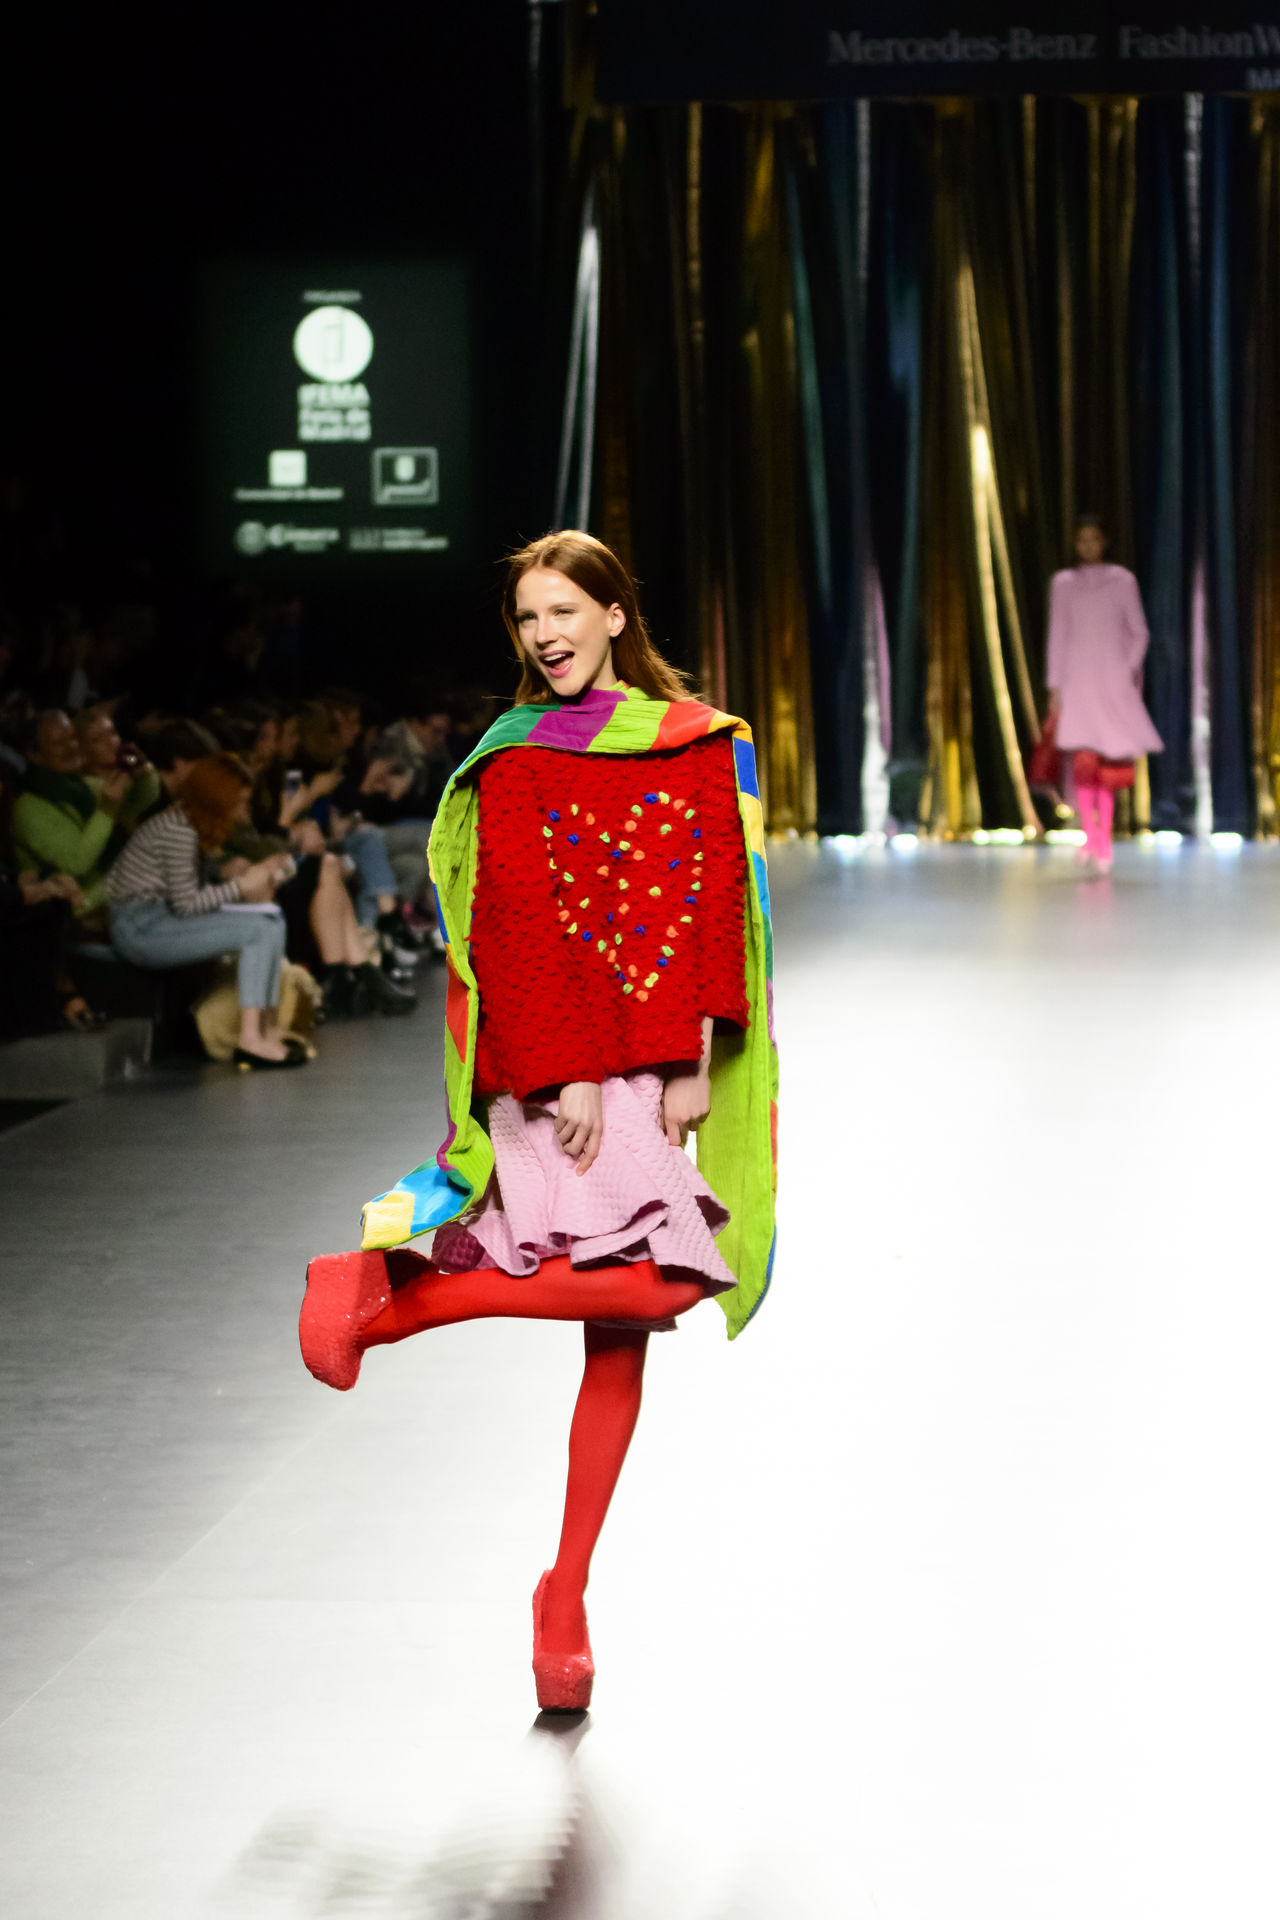 Agatha Ruiz De La Prada - Merecedes benz Fashion Week Madrid 2016 - Autumn-Winter 2016-2017. Catwalk Clothes Editorial  Fashion Fashion Show Fashion Week Full Length Lifestyles Mbfw Mbfw2016 Mercedes Benz Fashion Week Models Real People Woman Women Young Adult Young Women